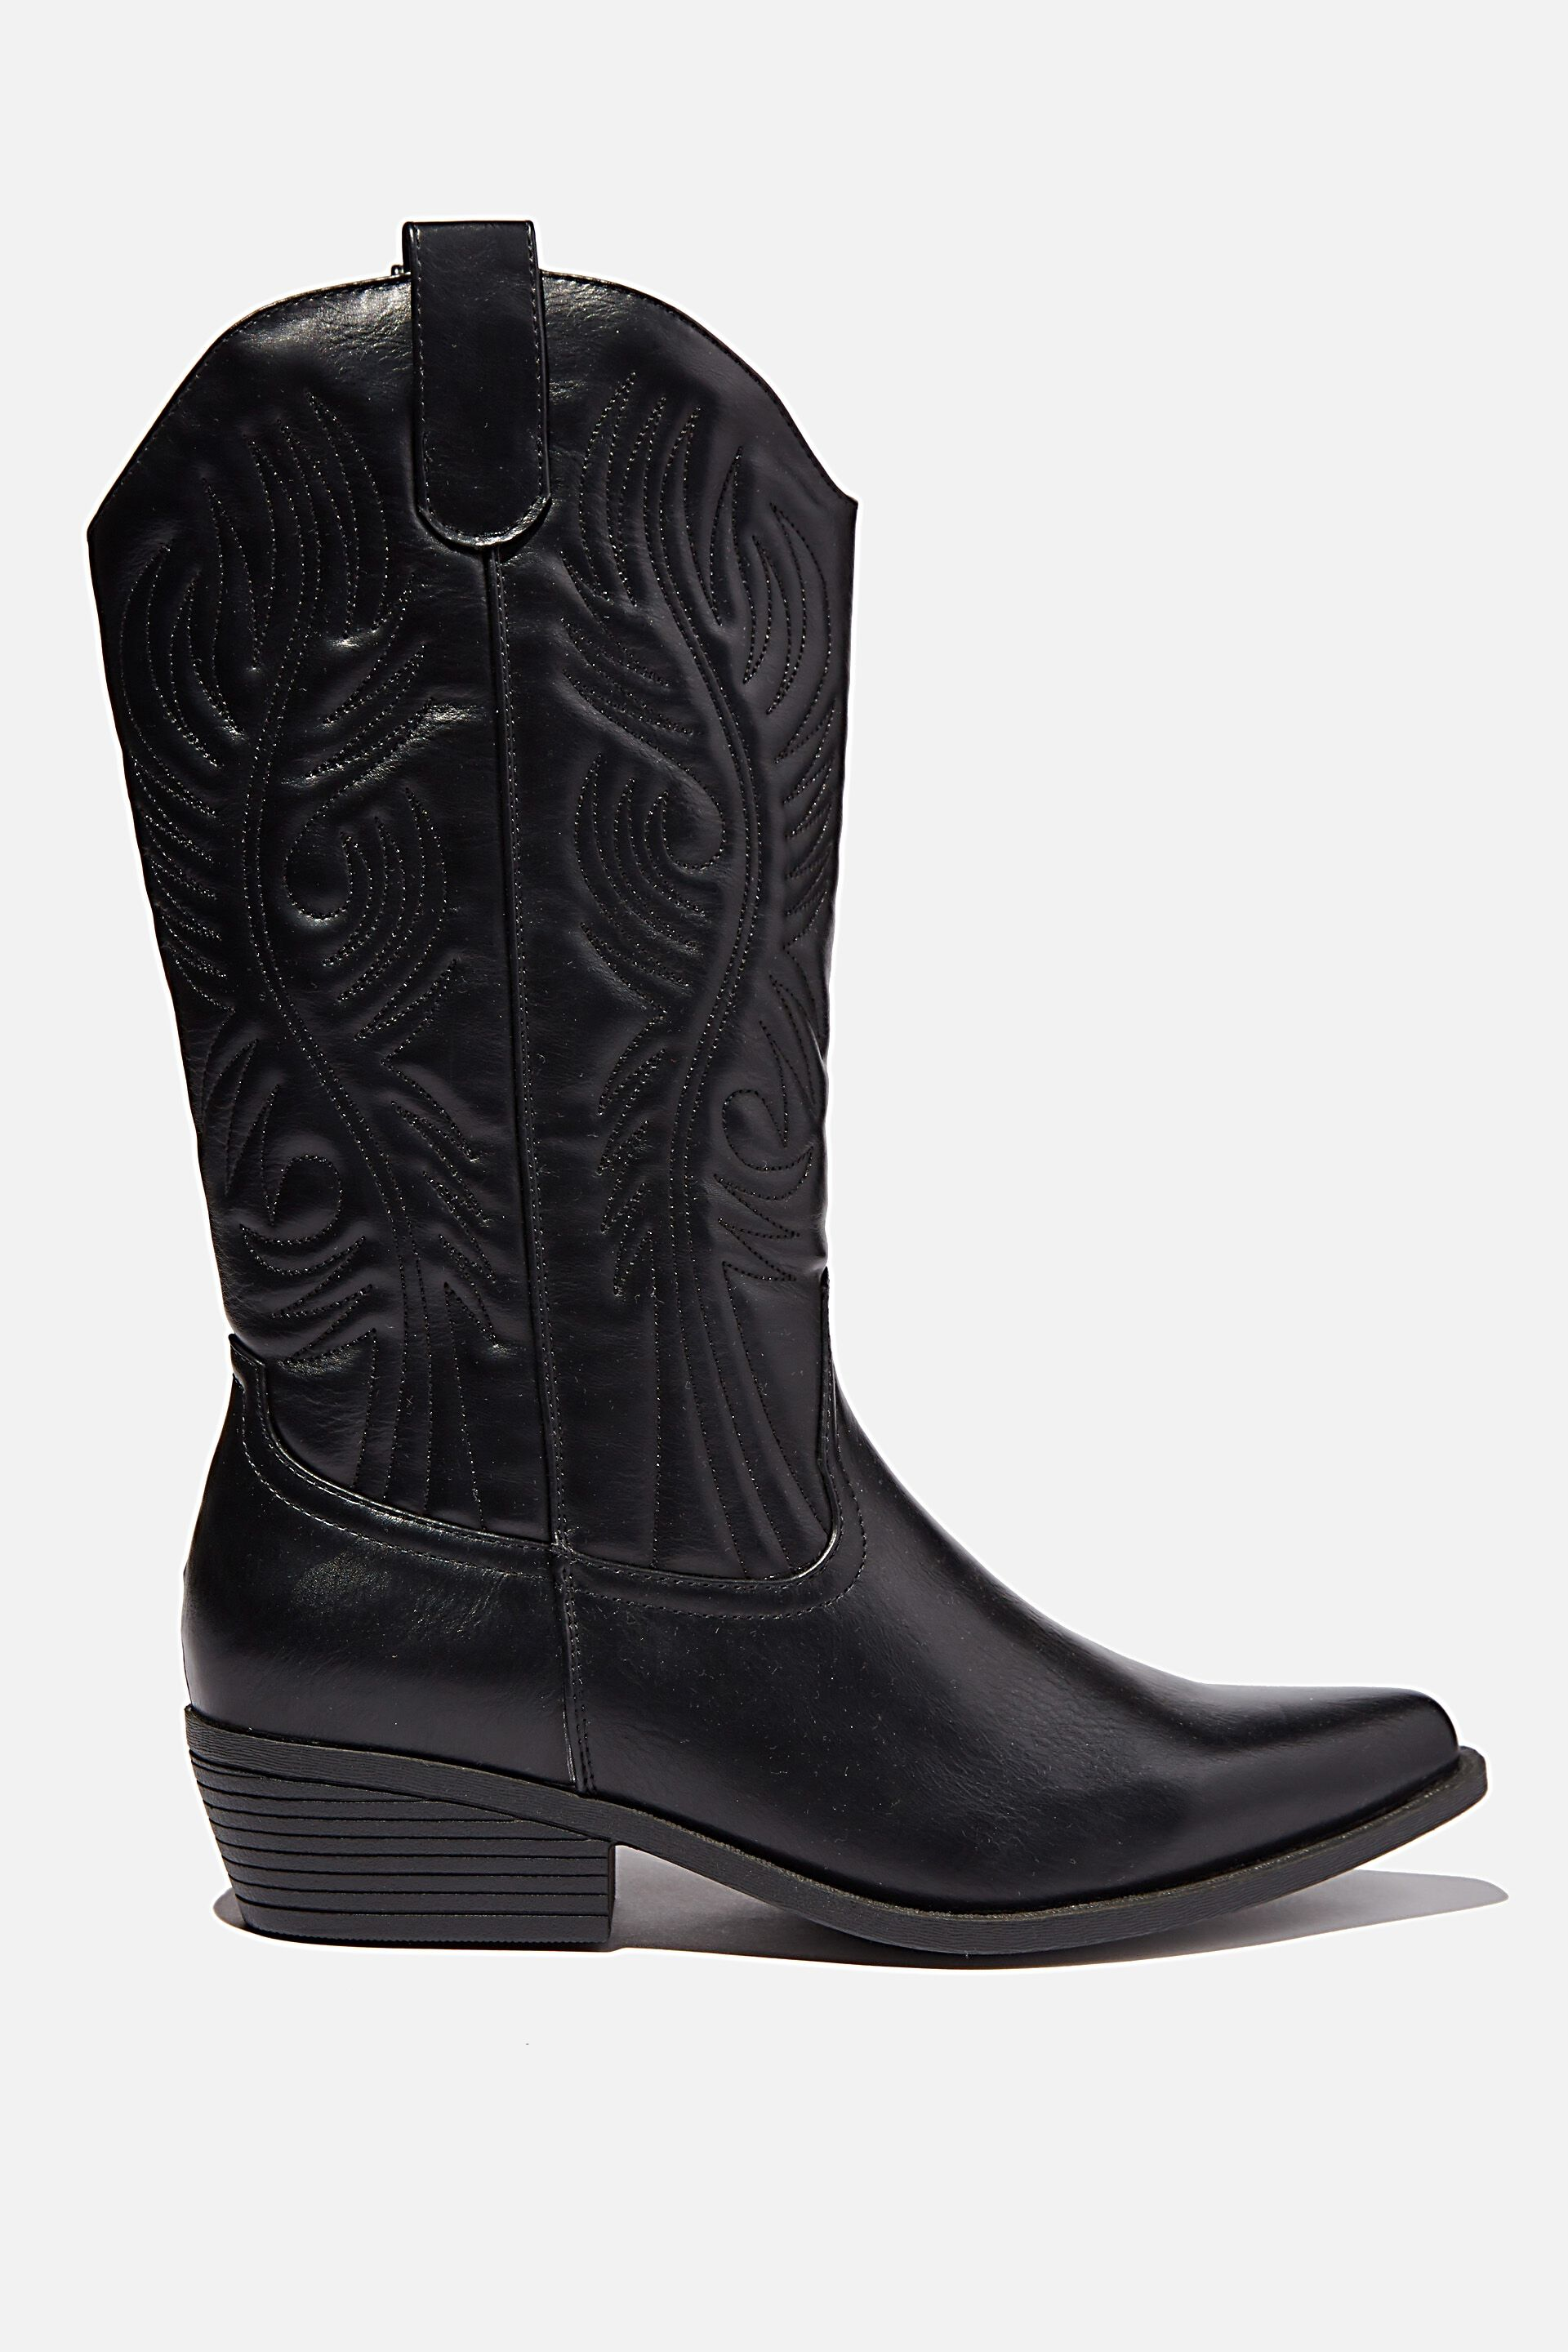 Boots, Ankle, Western \u0026 Lace-up   Cotton On